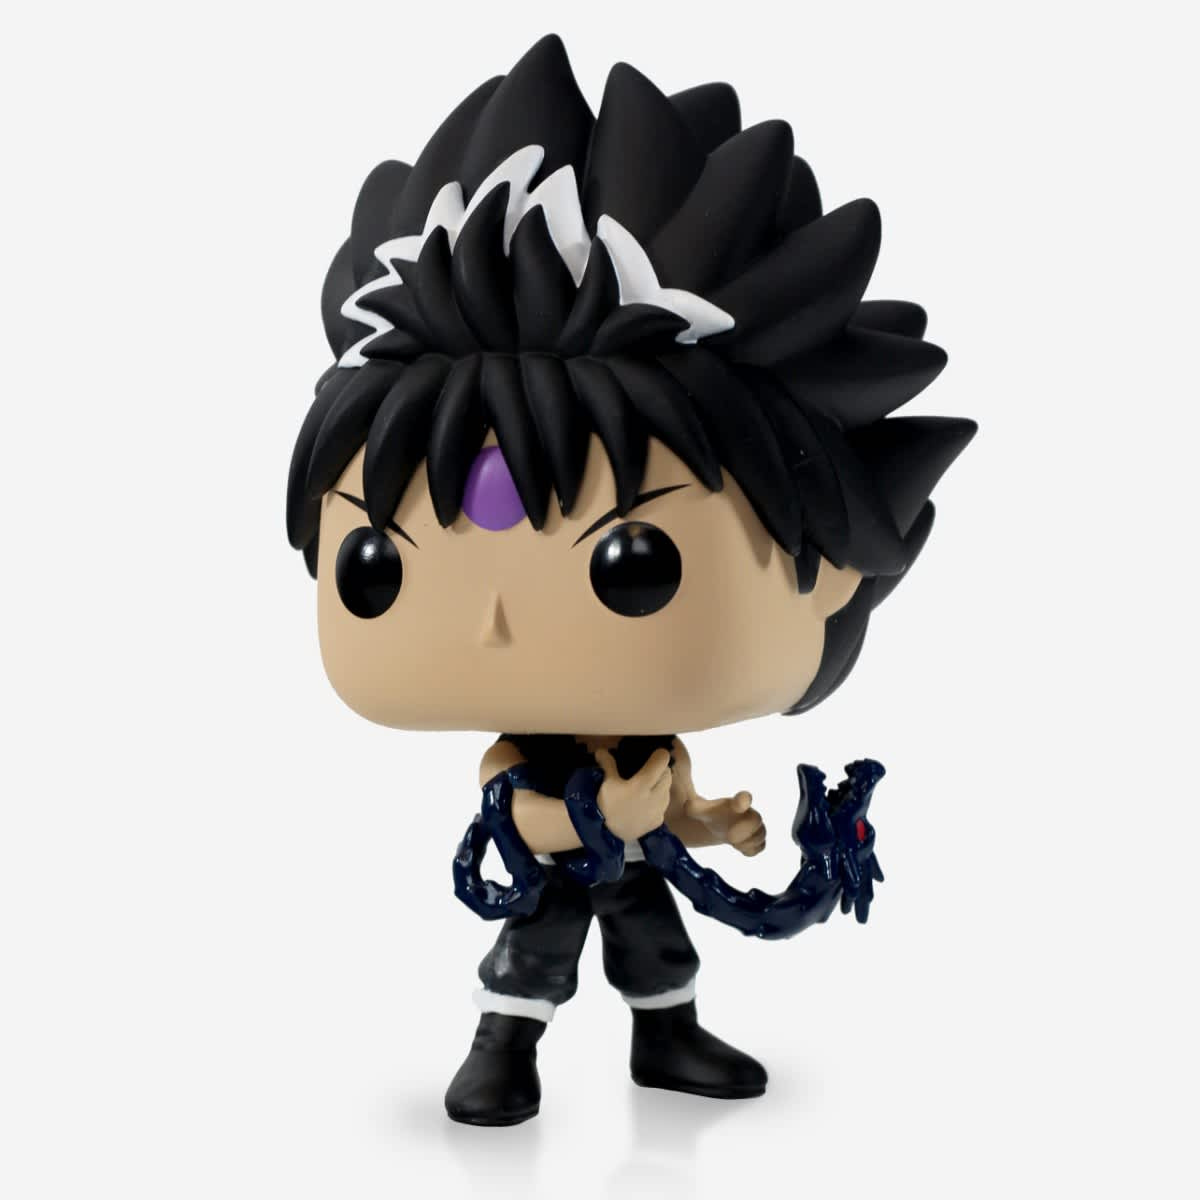 Shop Yu Yu Hakusho Funko Pop - Hiei